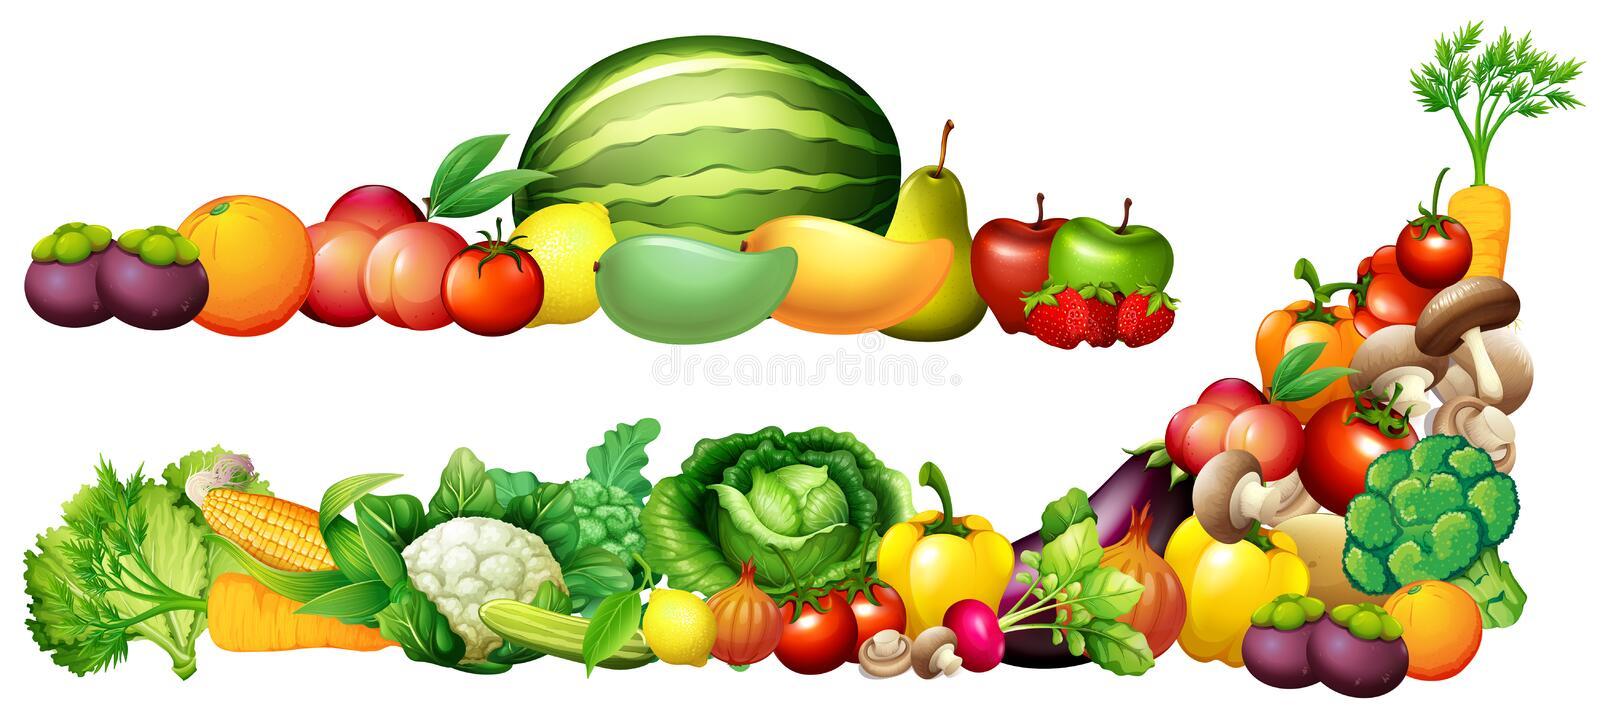 Pile of fresh vegetables and fruits royalty free illustration